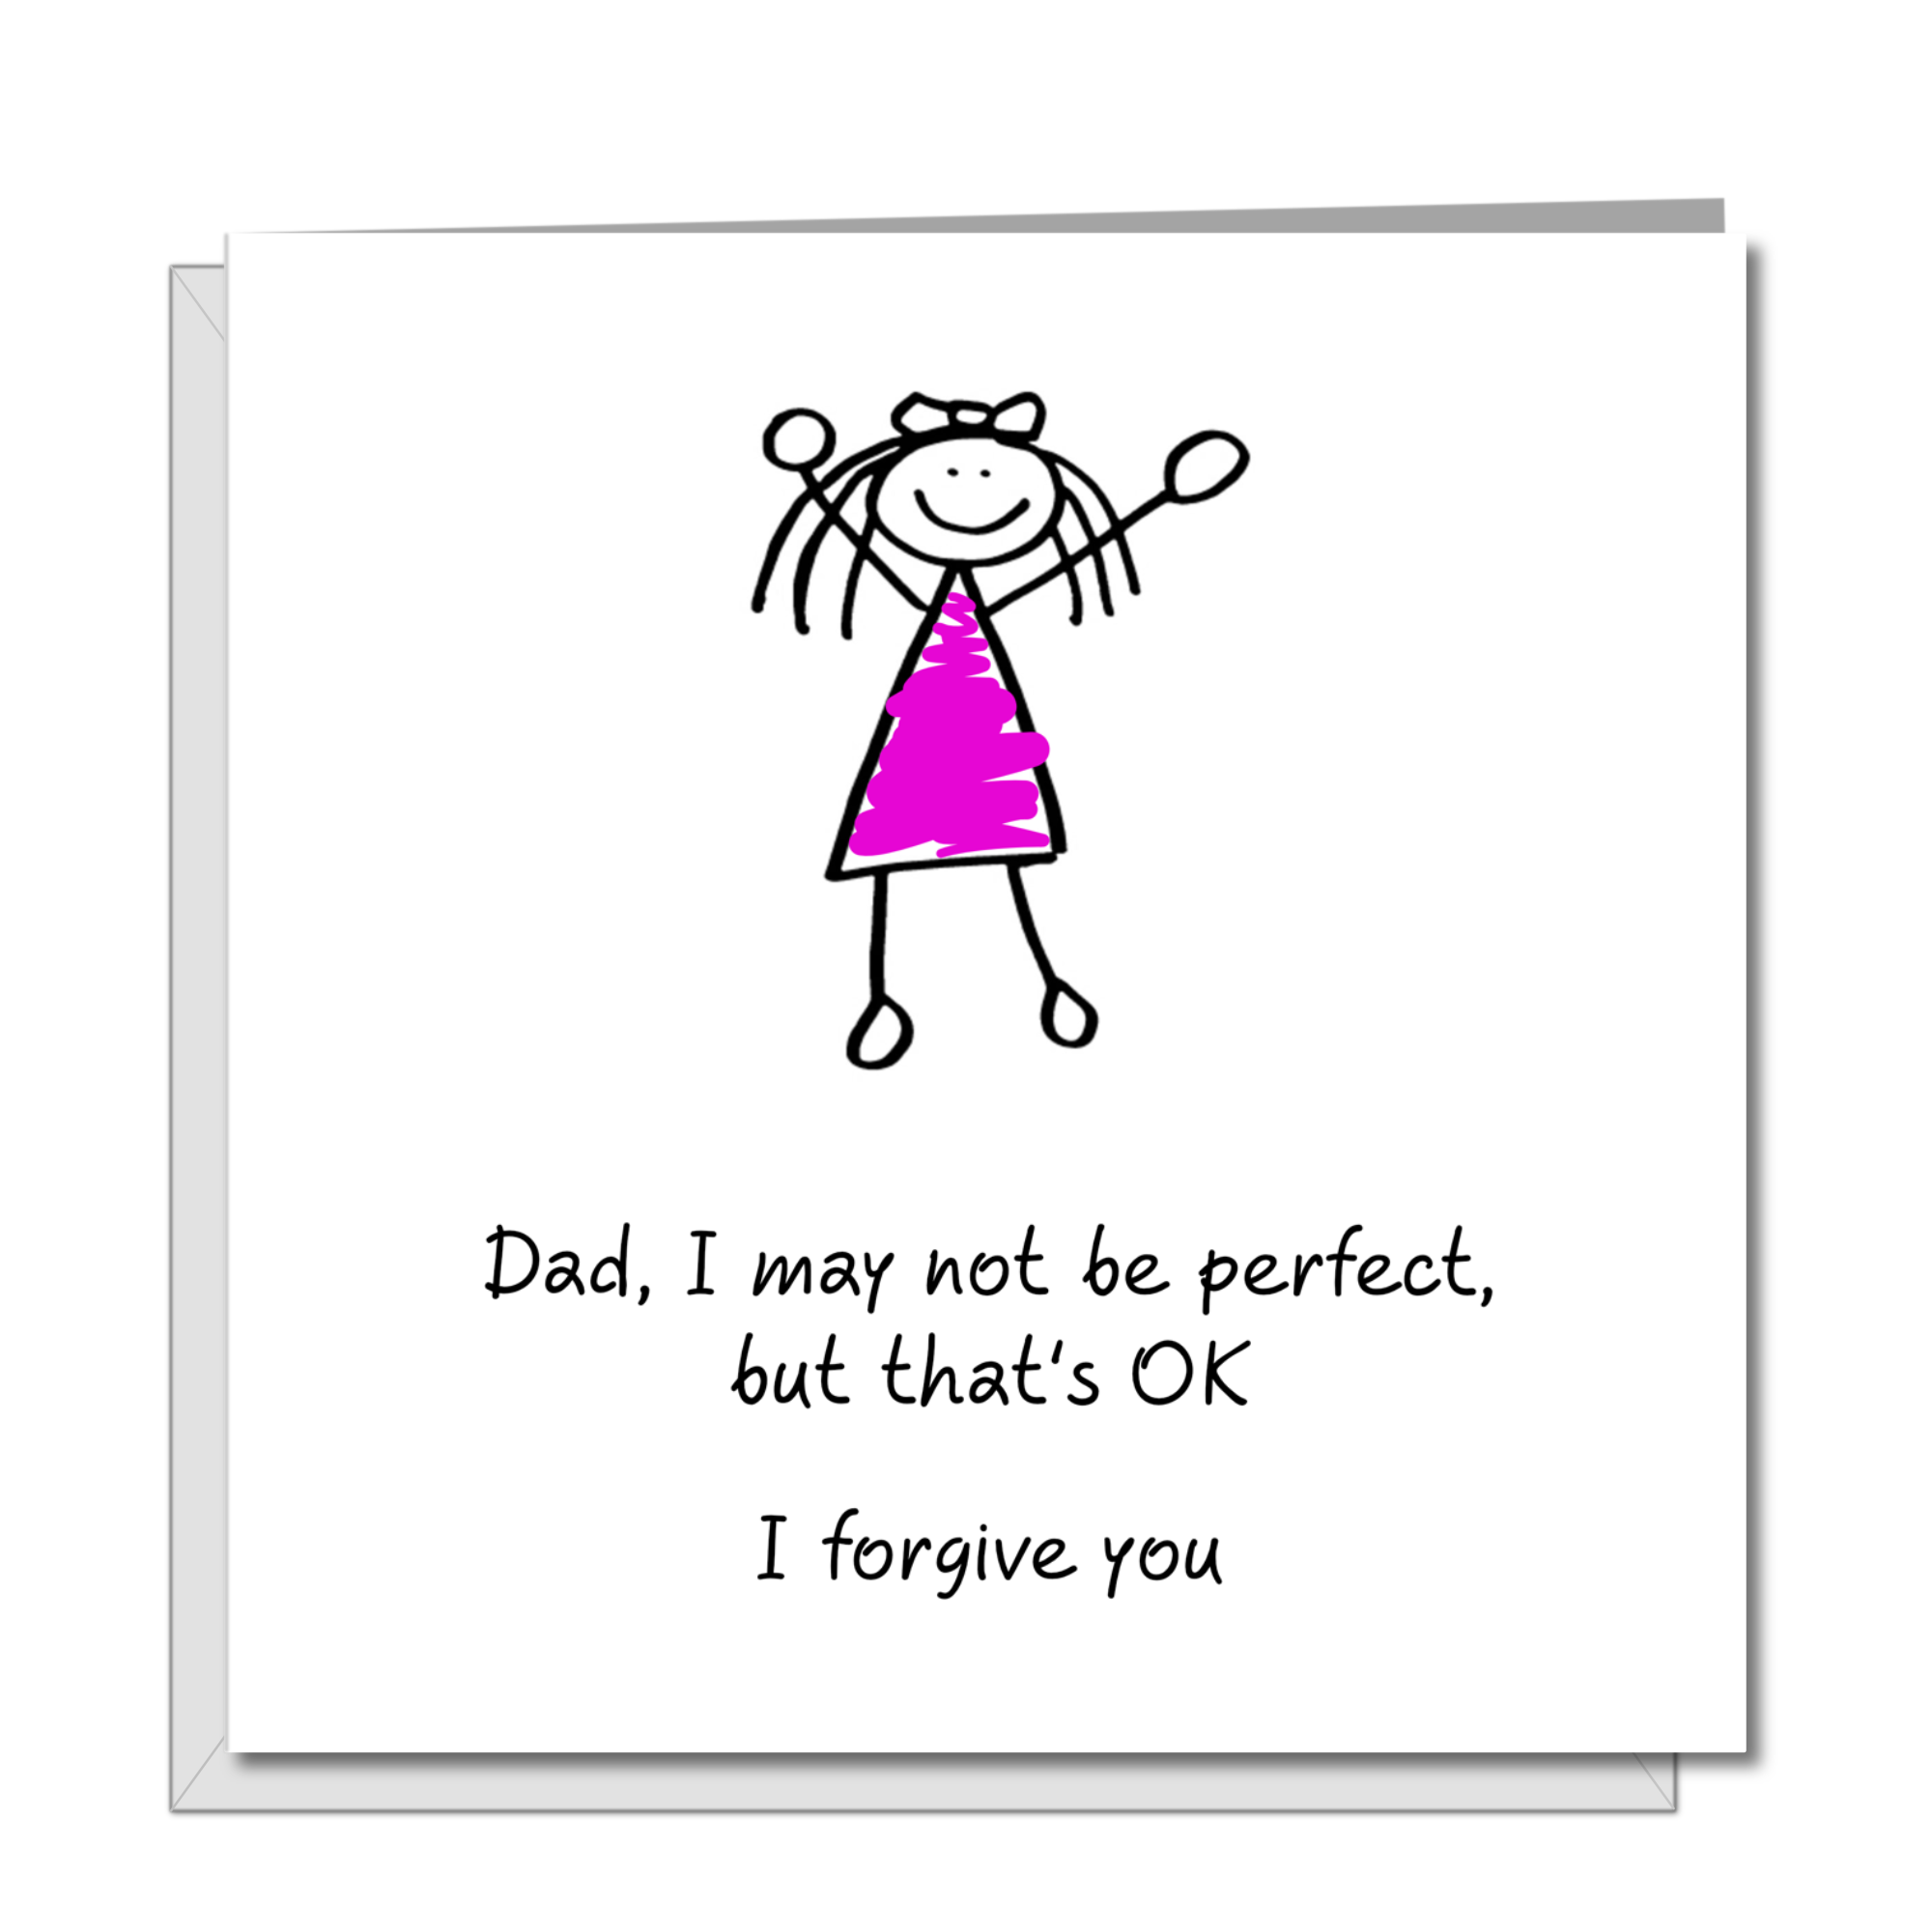 Funny Fathers Day Card from daughter - may not be perfect - best amazing Dad - humorous humour amusing